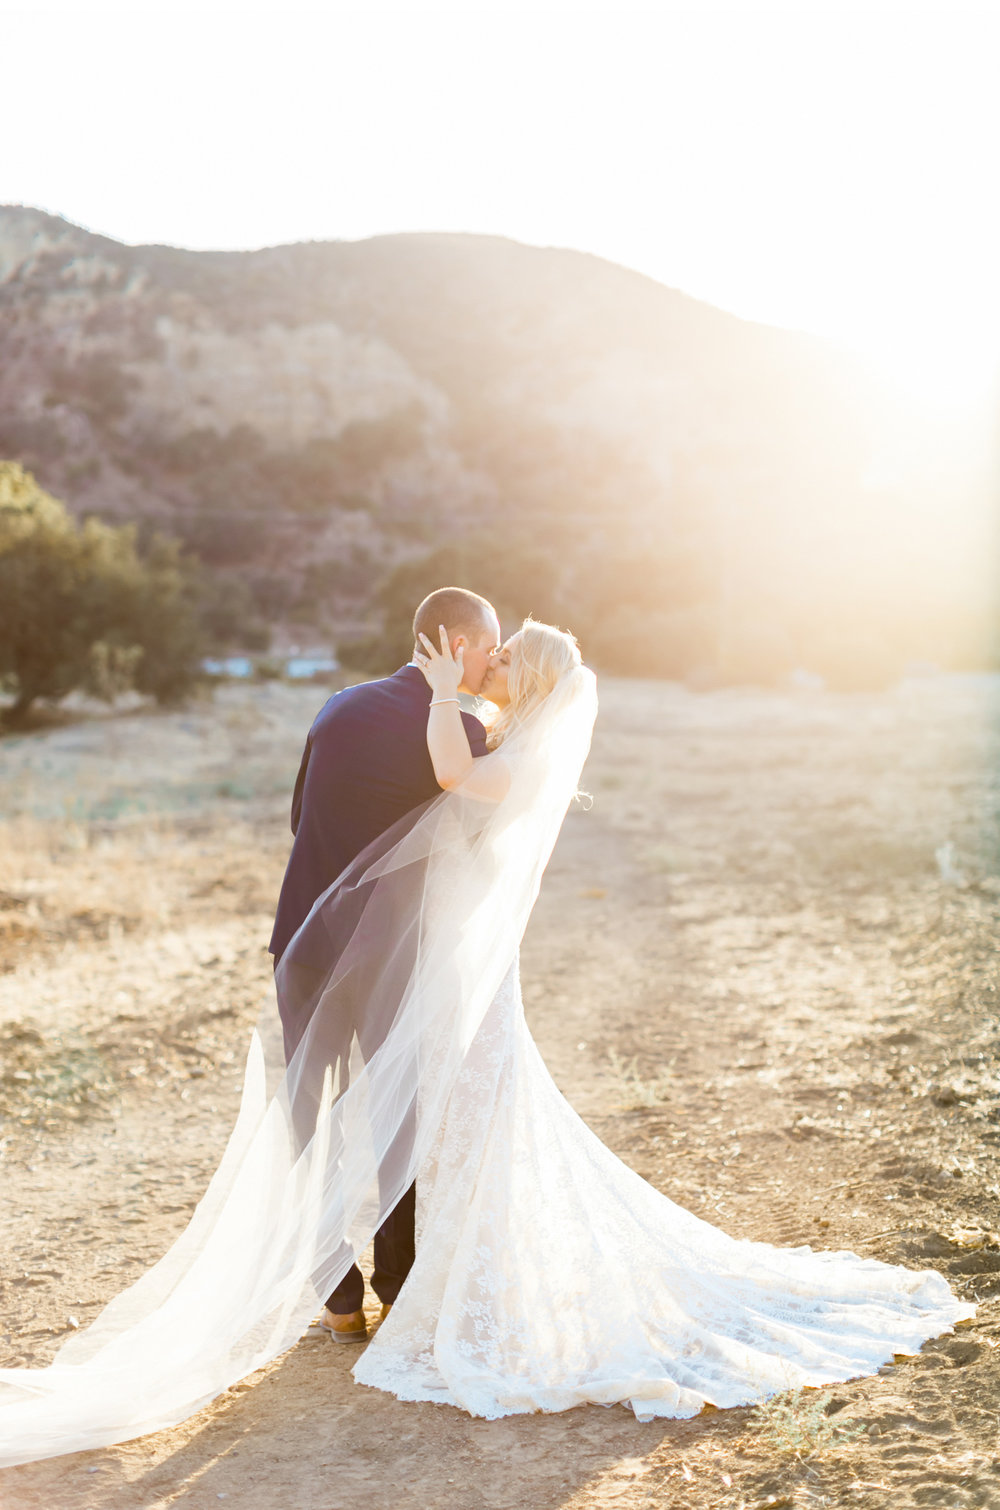 Style-Me-Pretty-Wedding-Photographer-Natalie-Schutt-Photography-Calfornia-San-Luis-Obispo_18.jpg